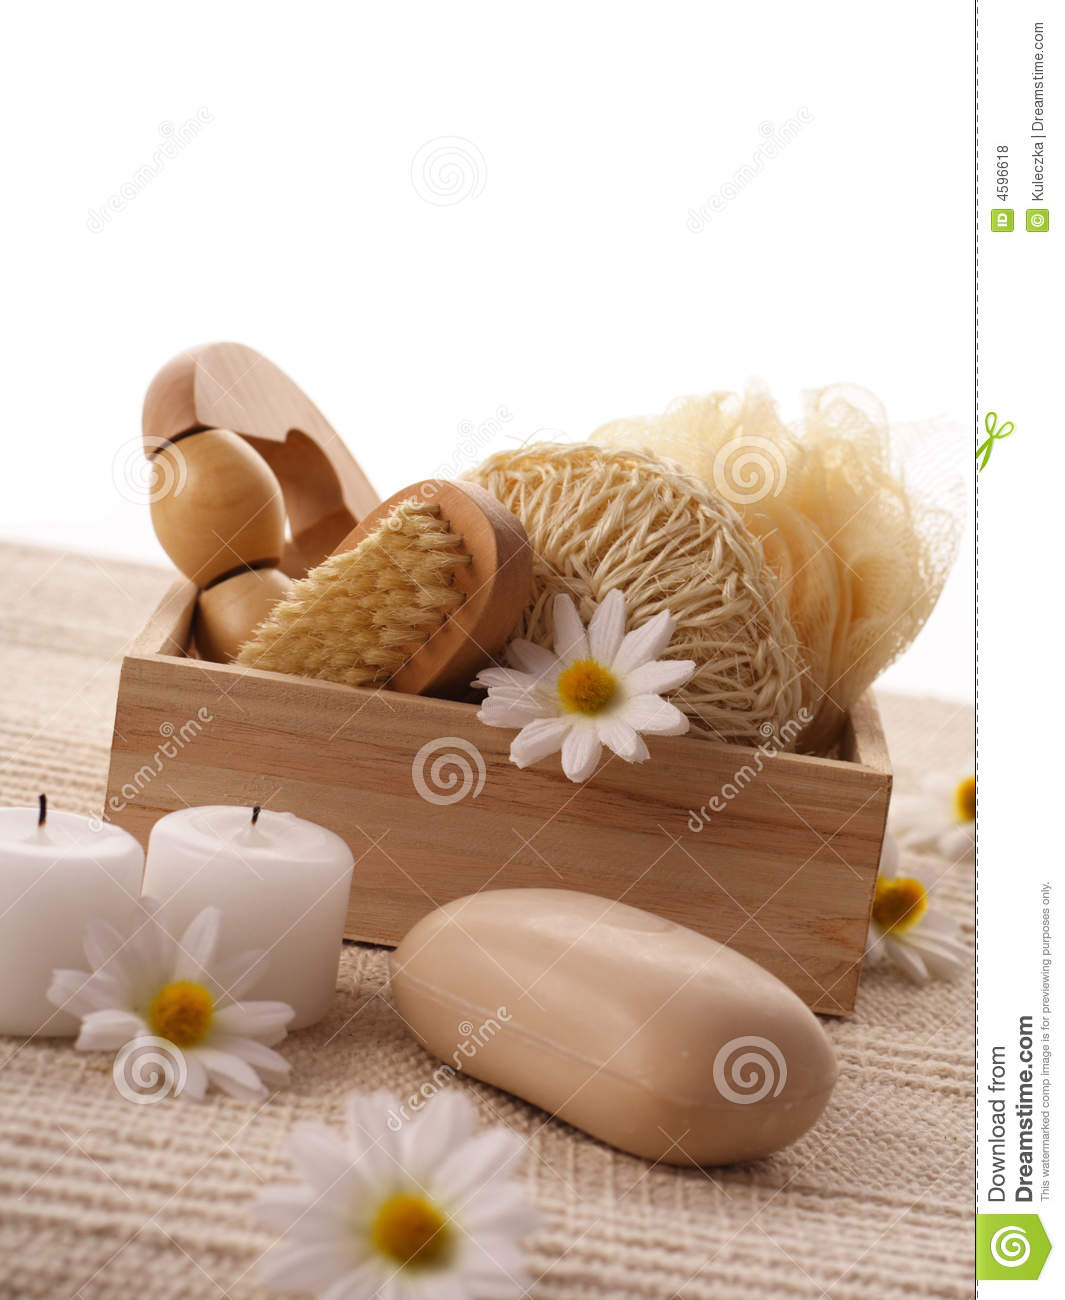 Spa Items Stock Photo, Picture And Royalty Free Image. Image 672819.